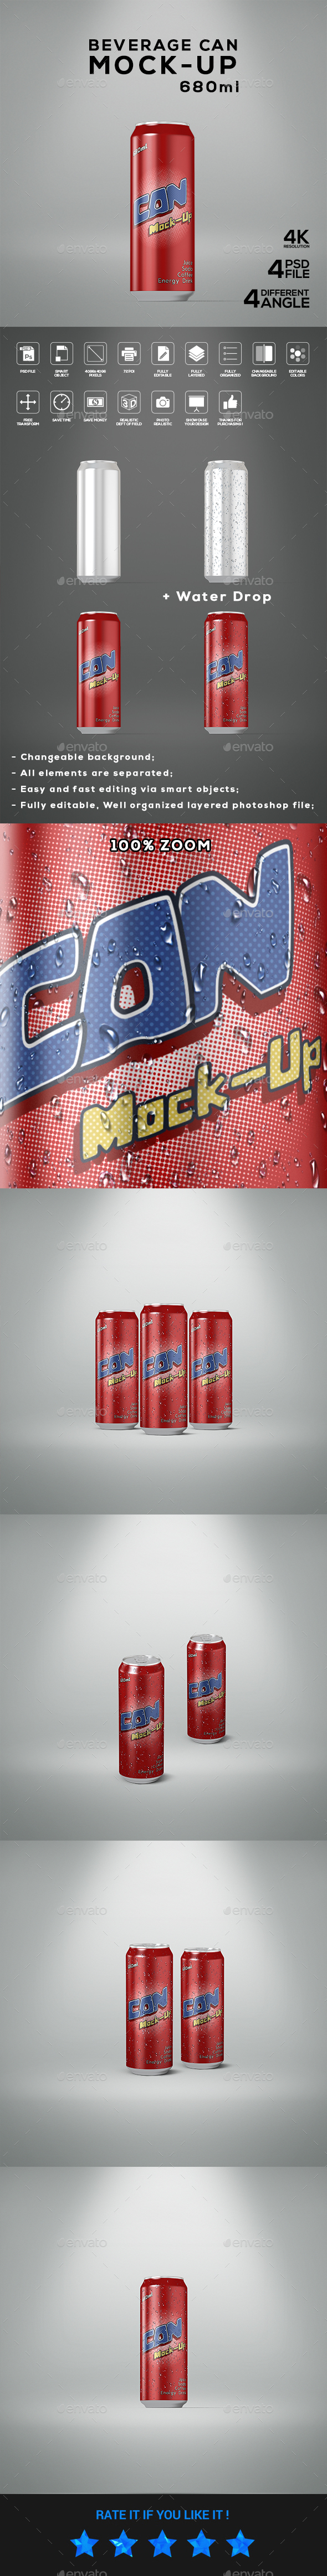 Beverage Can 680ml Mock-Up - Food and Drink Packaging